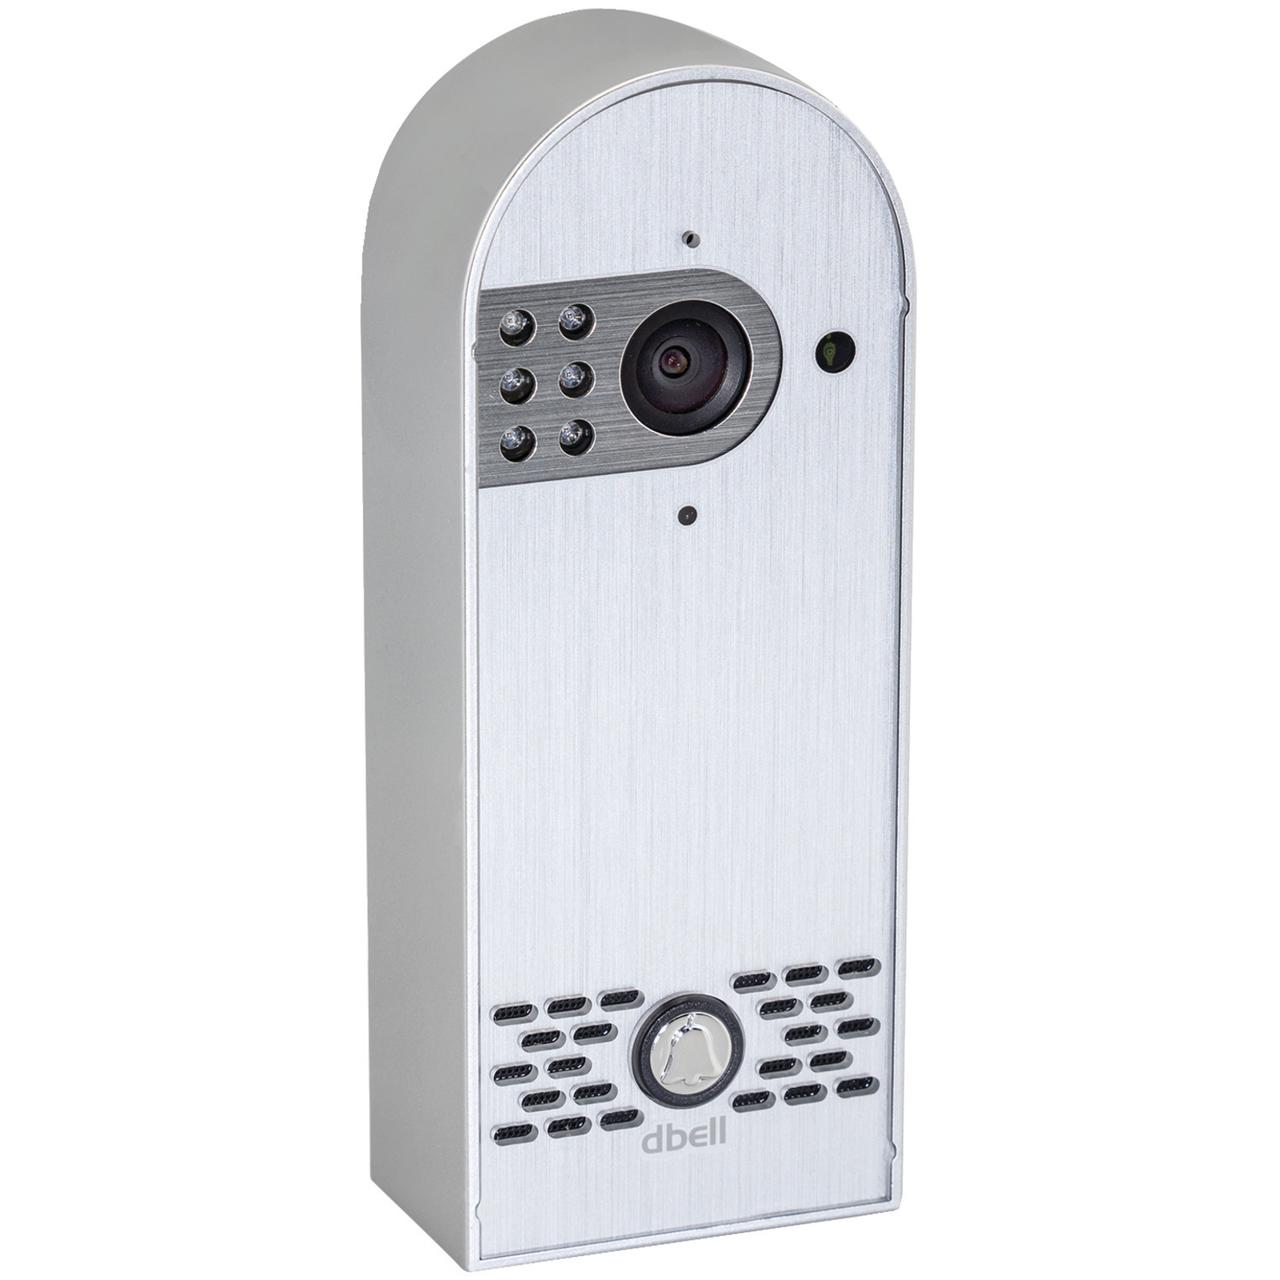 dbell HD live Wi-Fi Video Doorbell - Broadened Horizons Direct